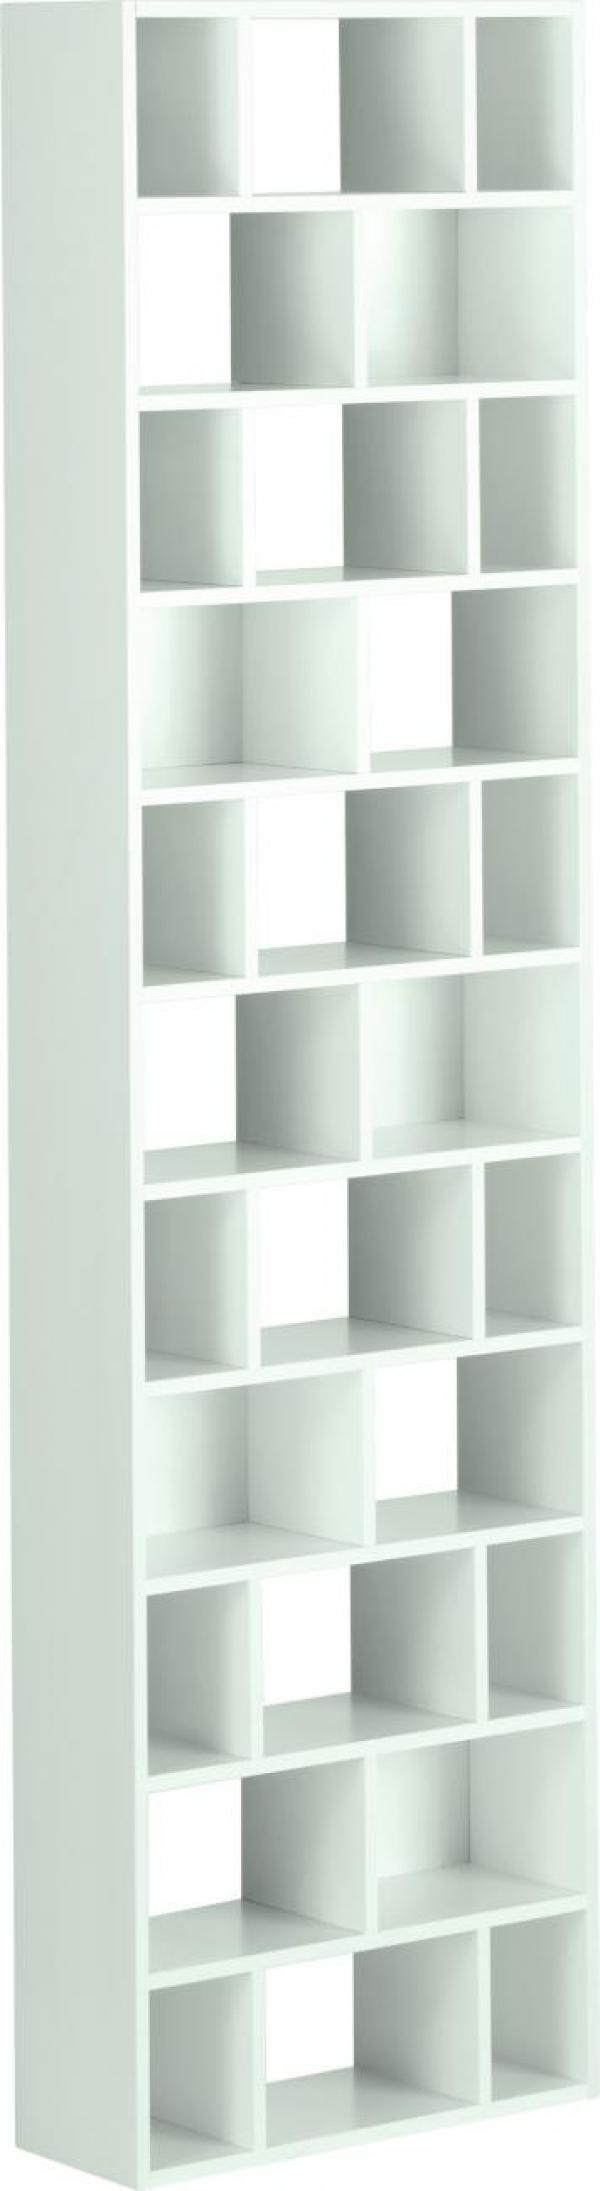 CLEO Shelves and bookcases White Wood Lacquered - Habitat